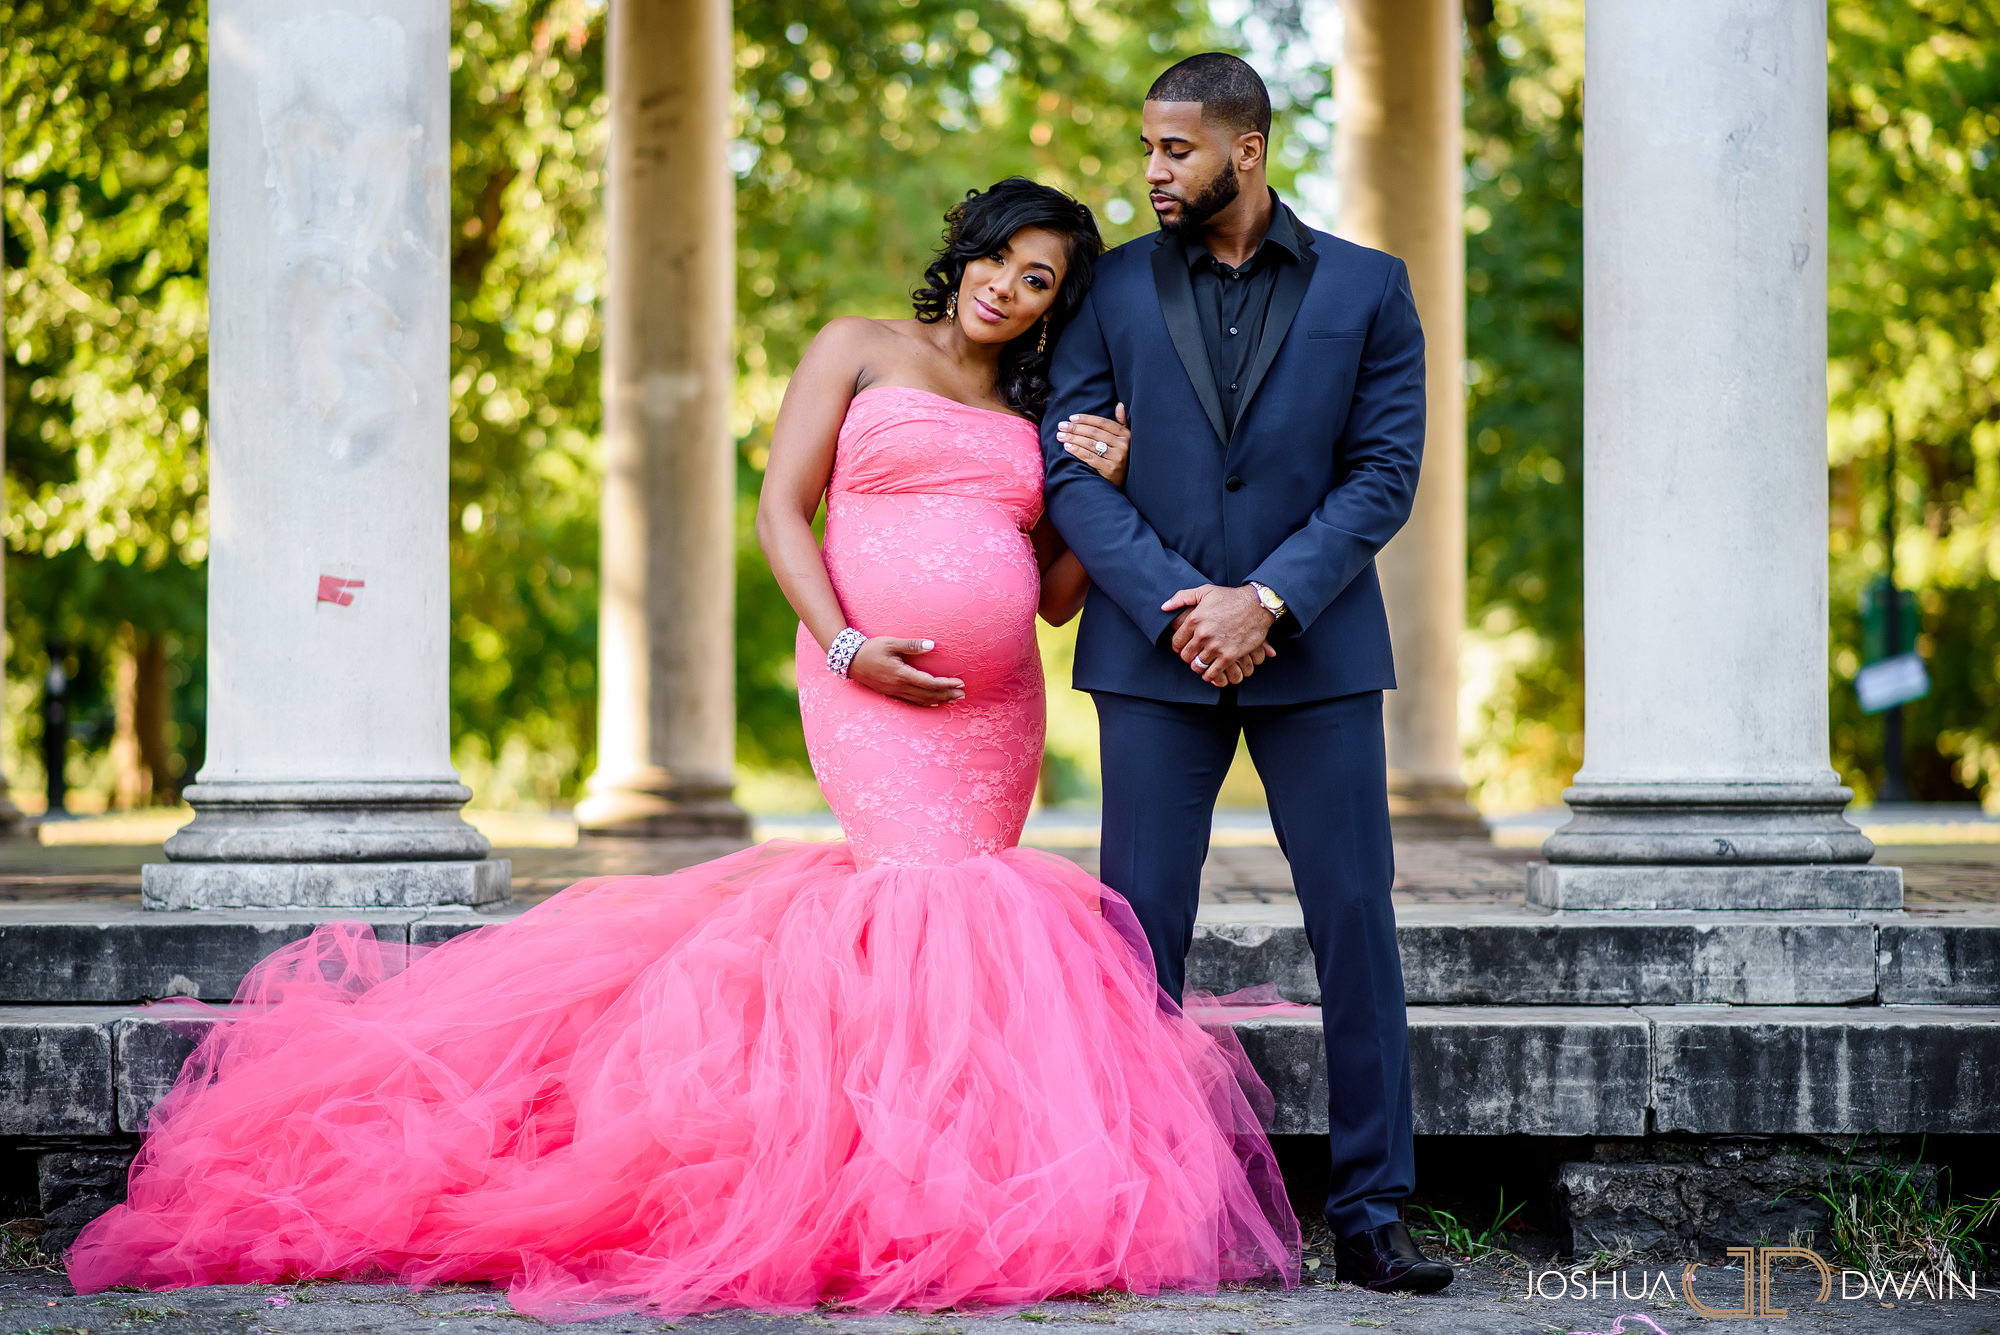 khadeen-devale-004-brooklyn-family-maternity-photographer-joshua-dwain